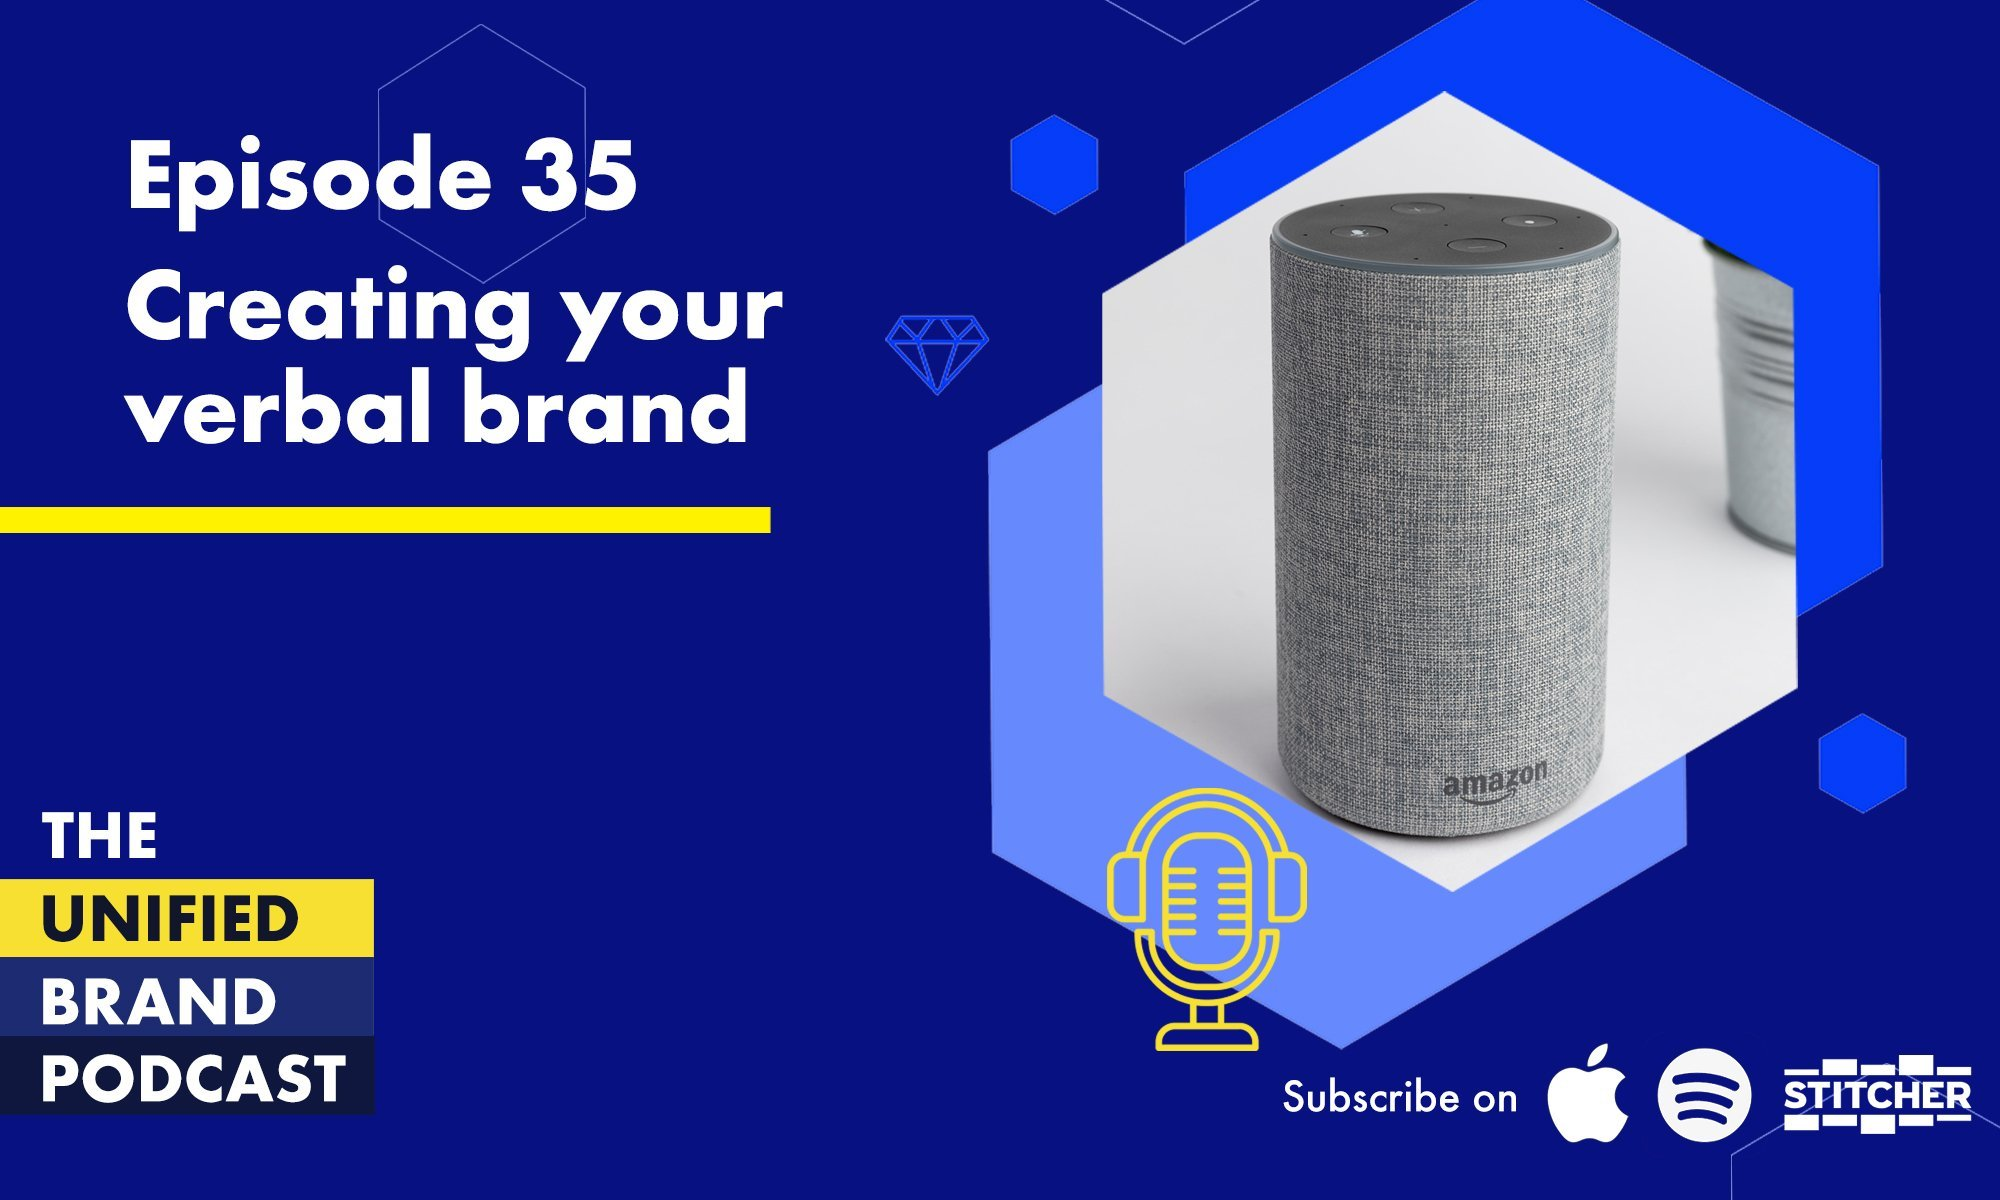 How to Leverage Smart Speakers and Wearables to Build Your Verbal Brand